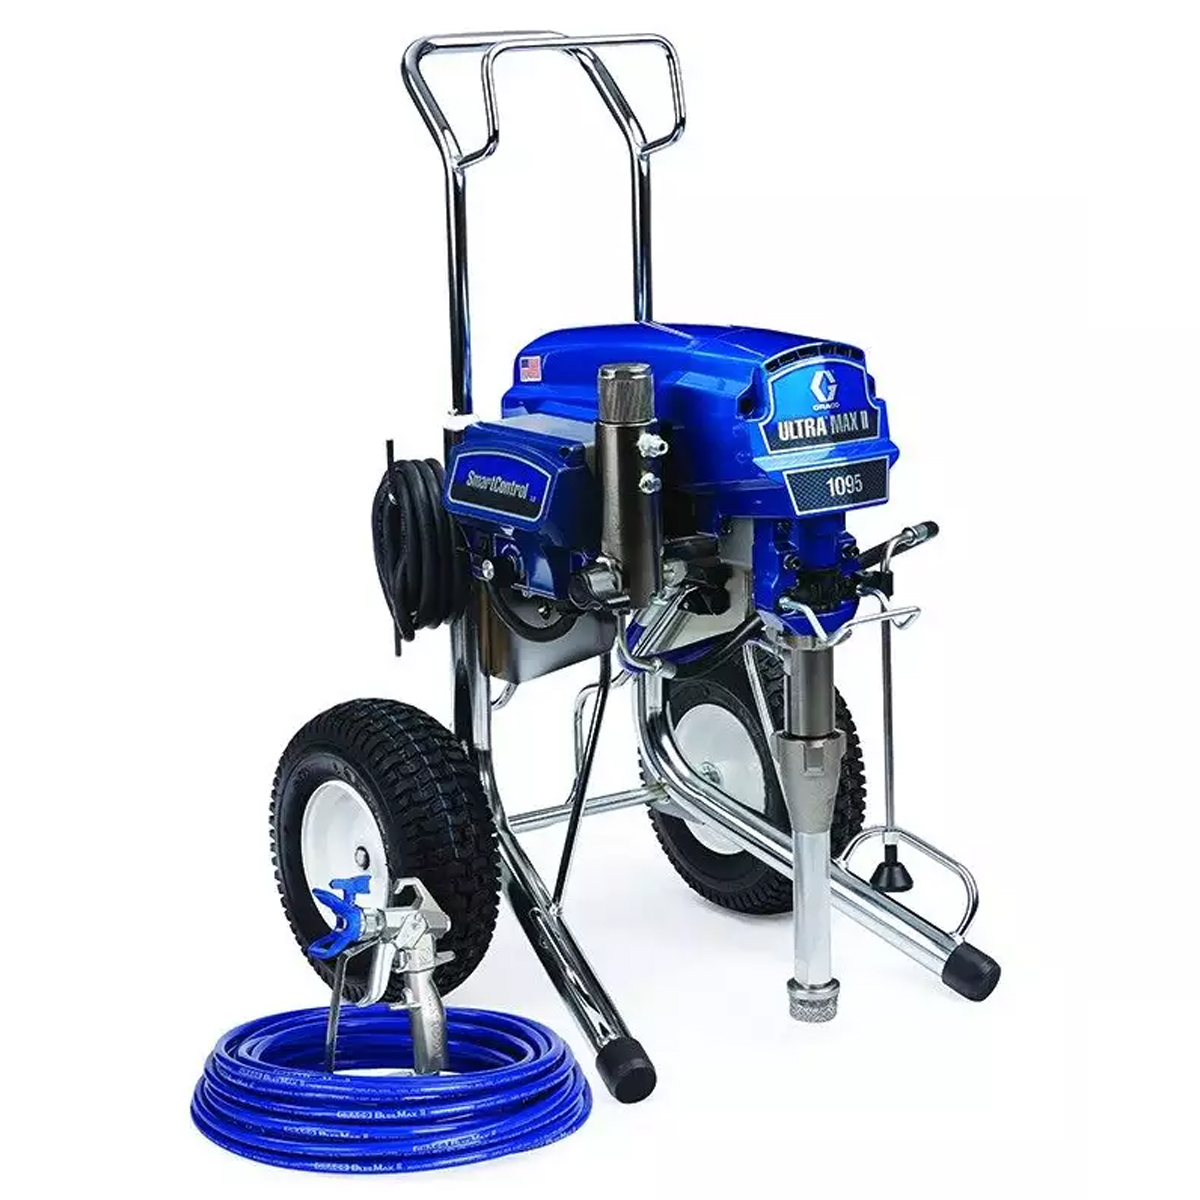 Graco ULTRA® MAX II Standard 1095 Hi-Boy Electric Airless Paint Sprayer